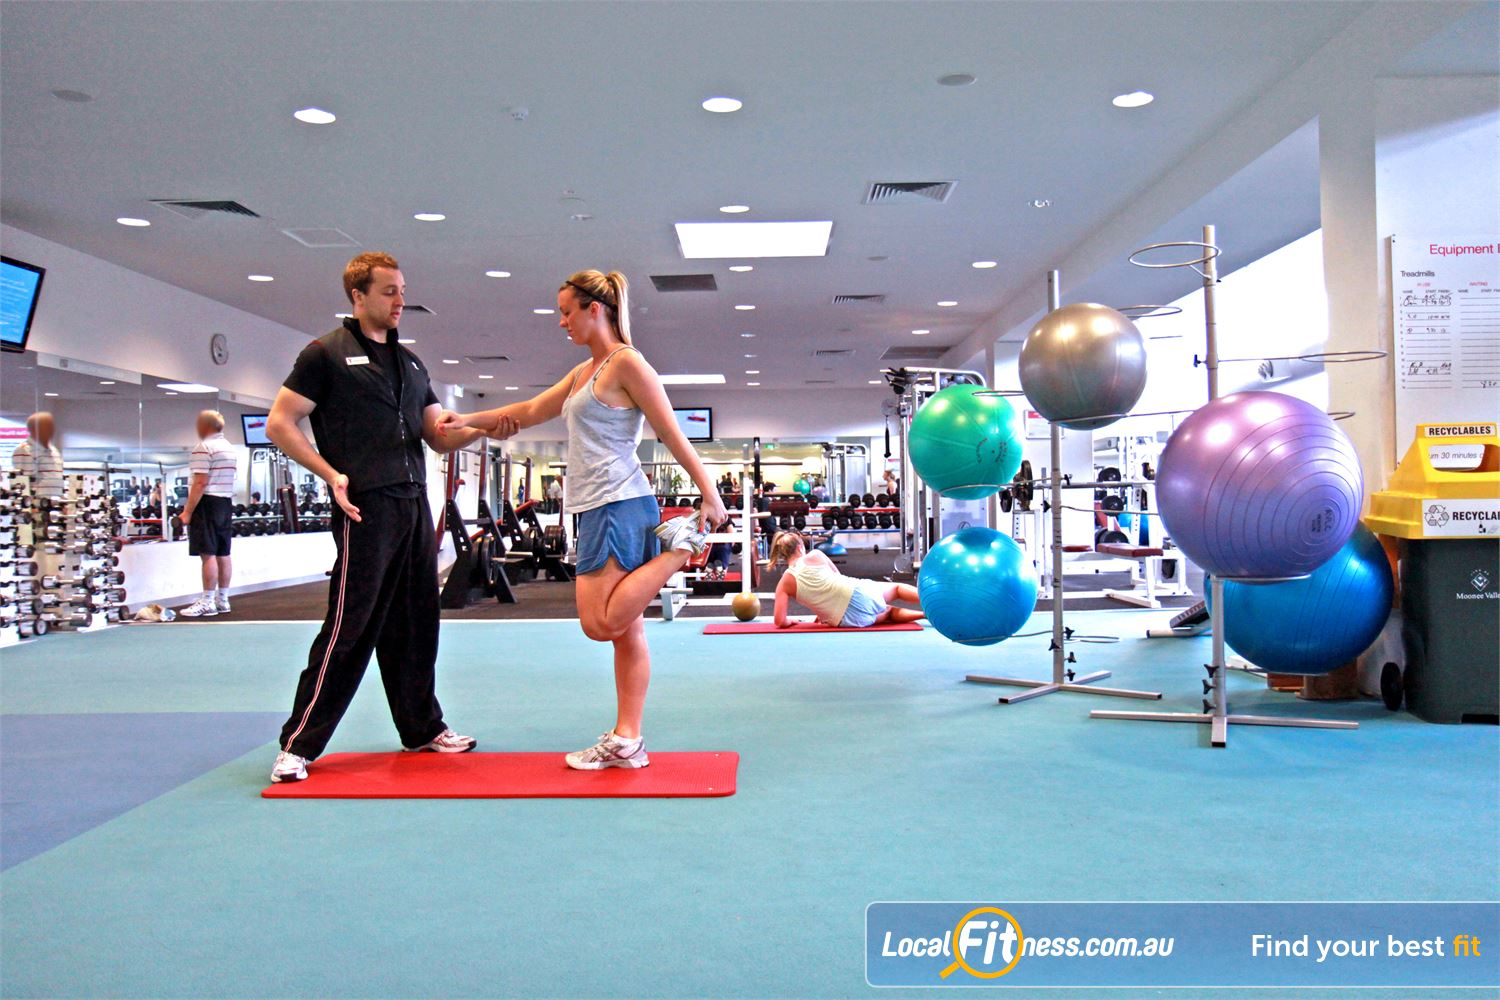 Ascot Vale Leisure Centre Near Aberfeldie Our Ascot Vale gym provides a full range of fitballs, mats and more.